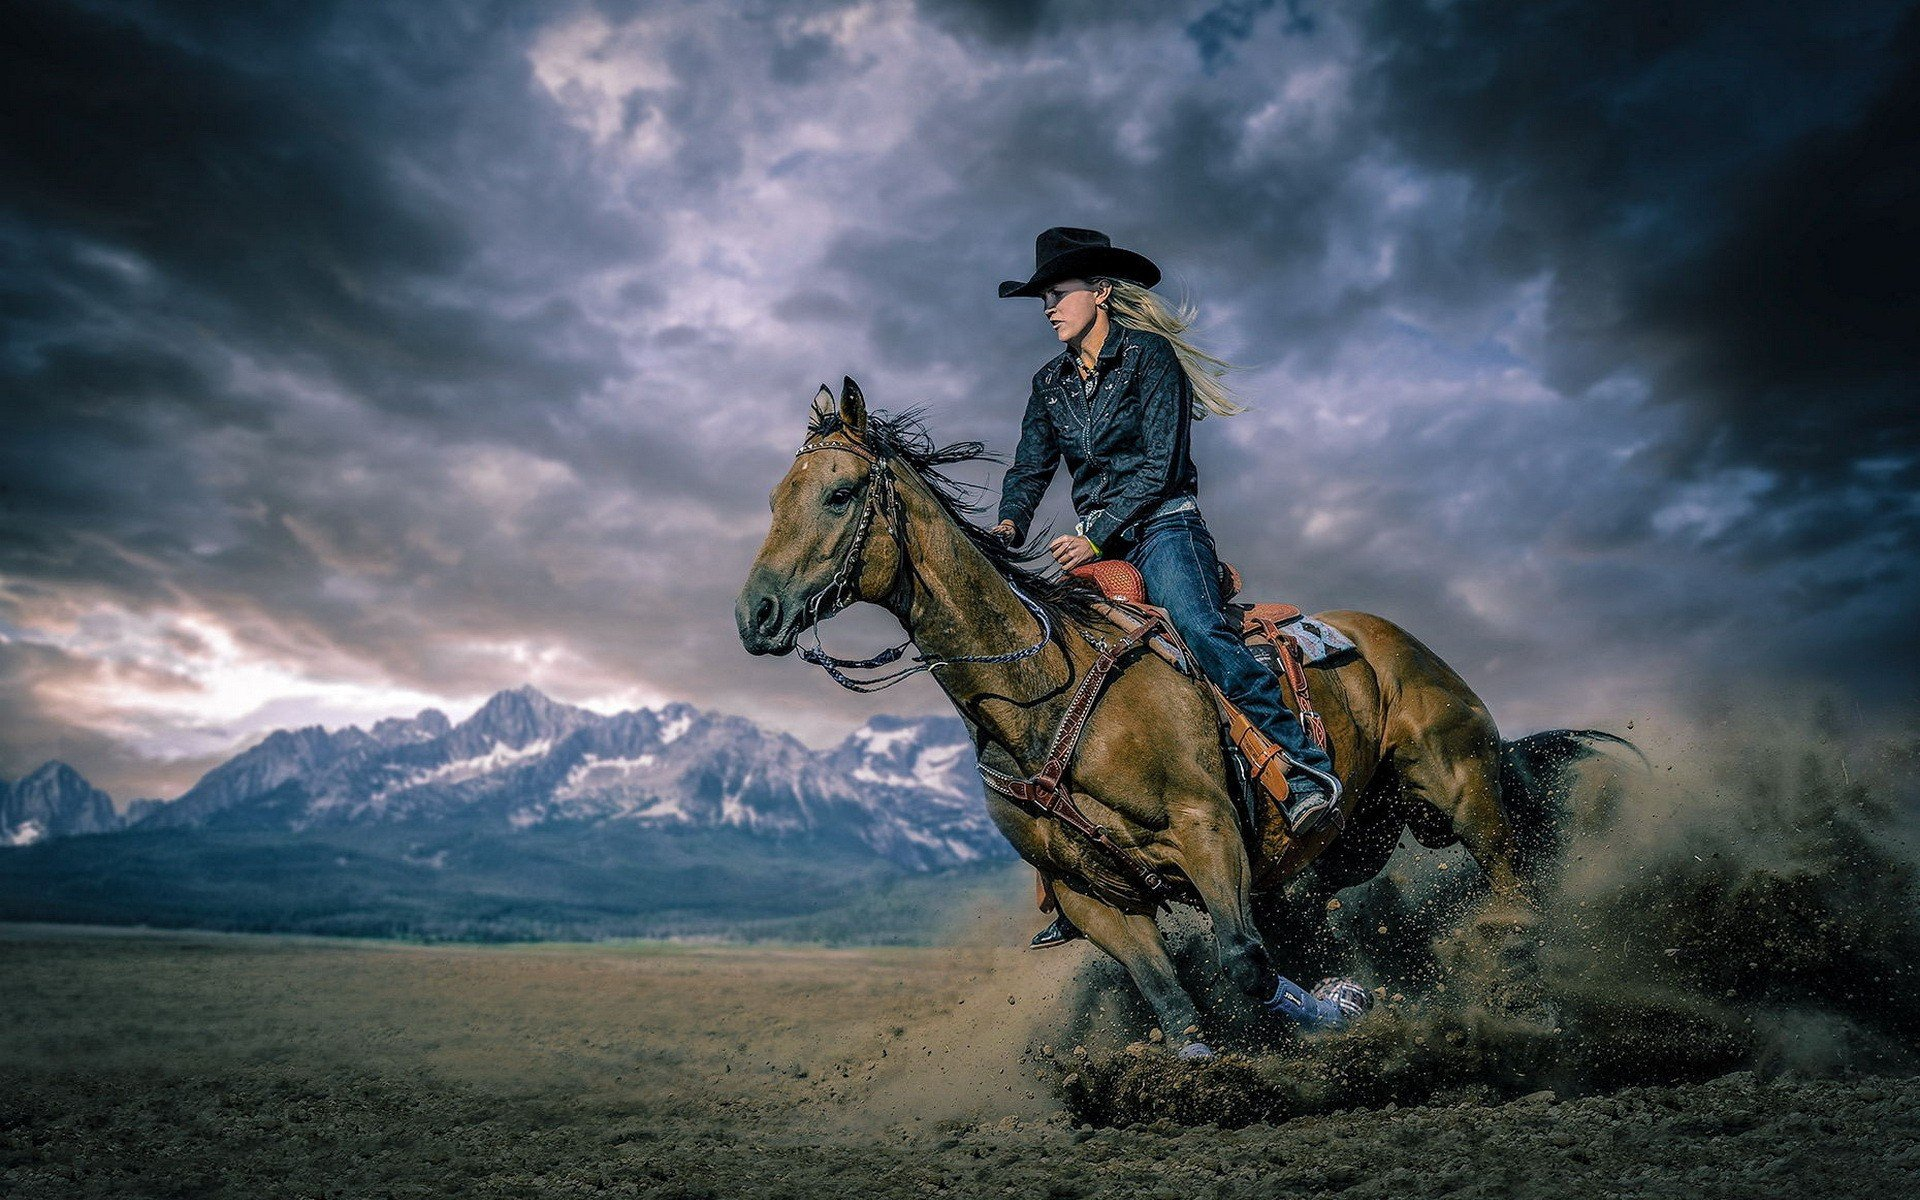 14 Horse Riding Hd Wallpapers Background Images Wallpaper Abyss